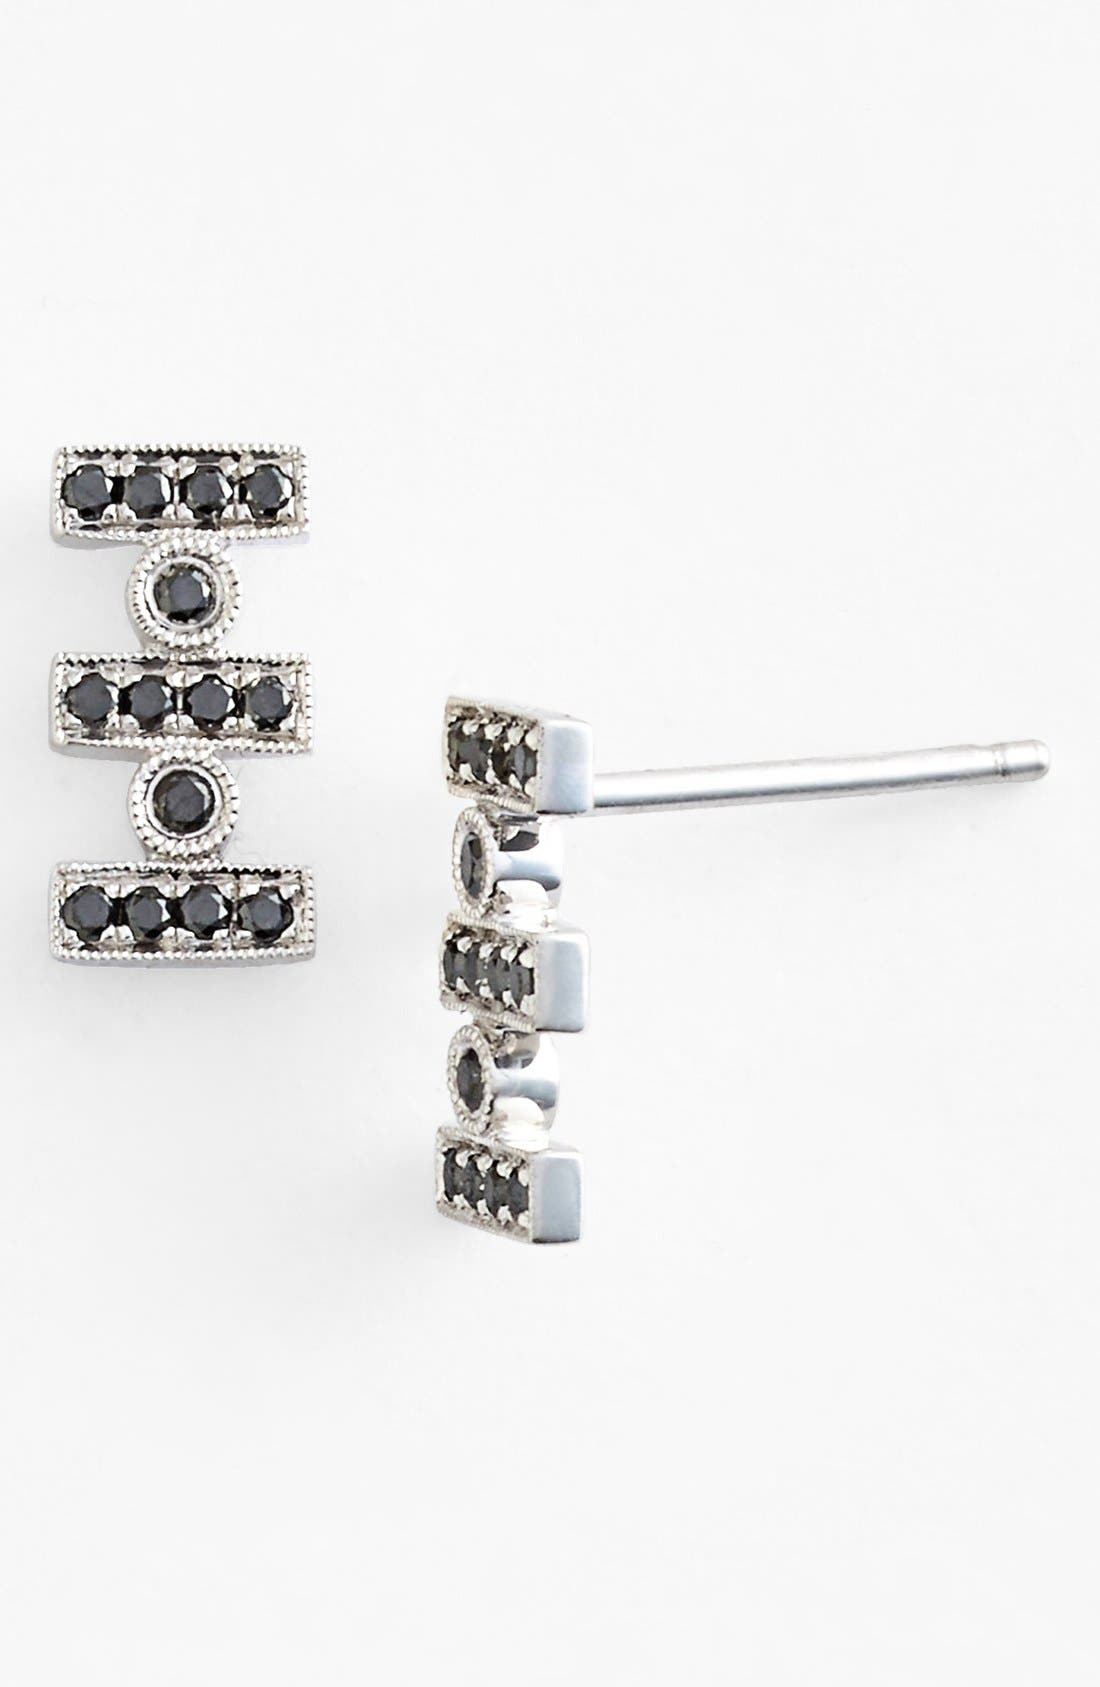 Main Image - Dana Rebecca Designs 'Reese' Diamond Stud Earrings